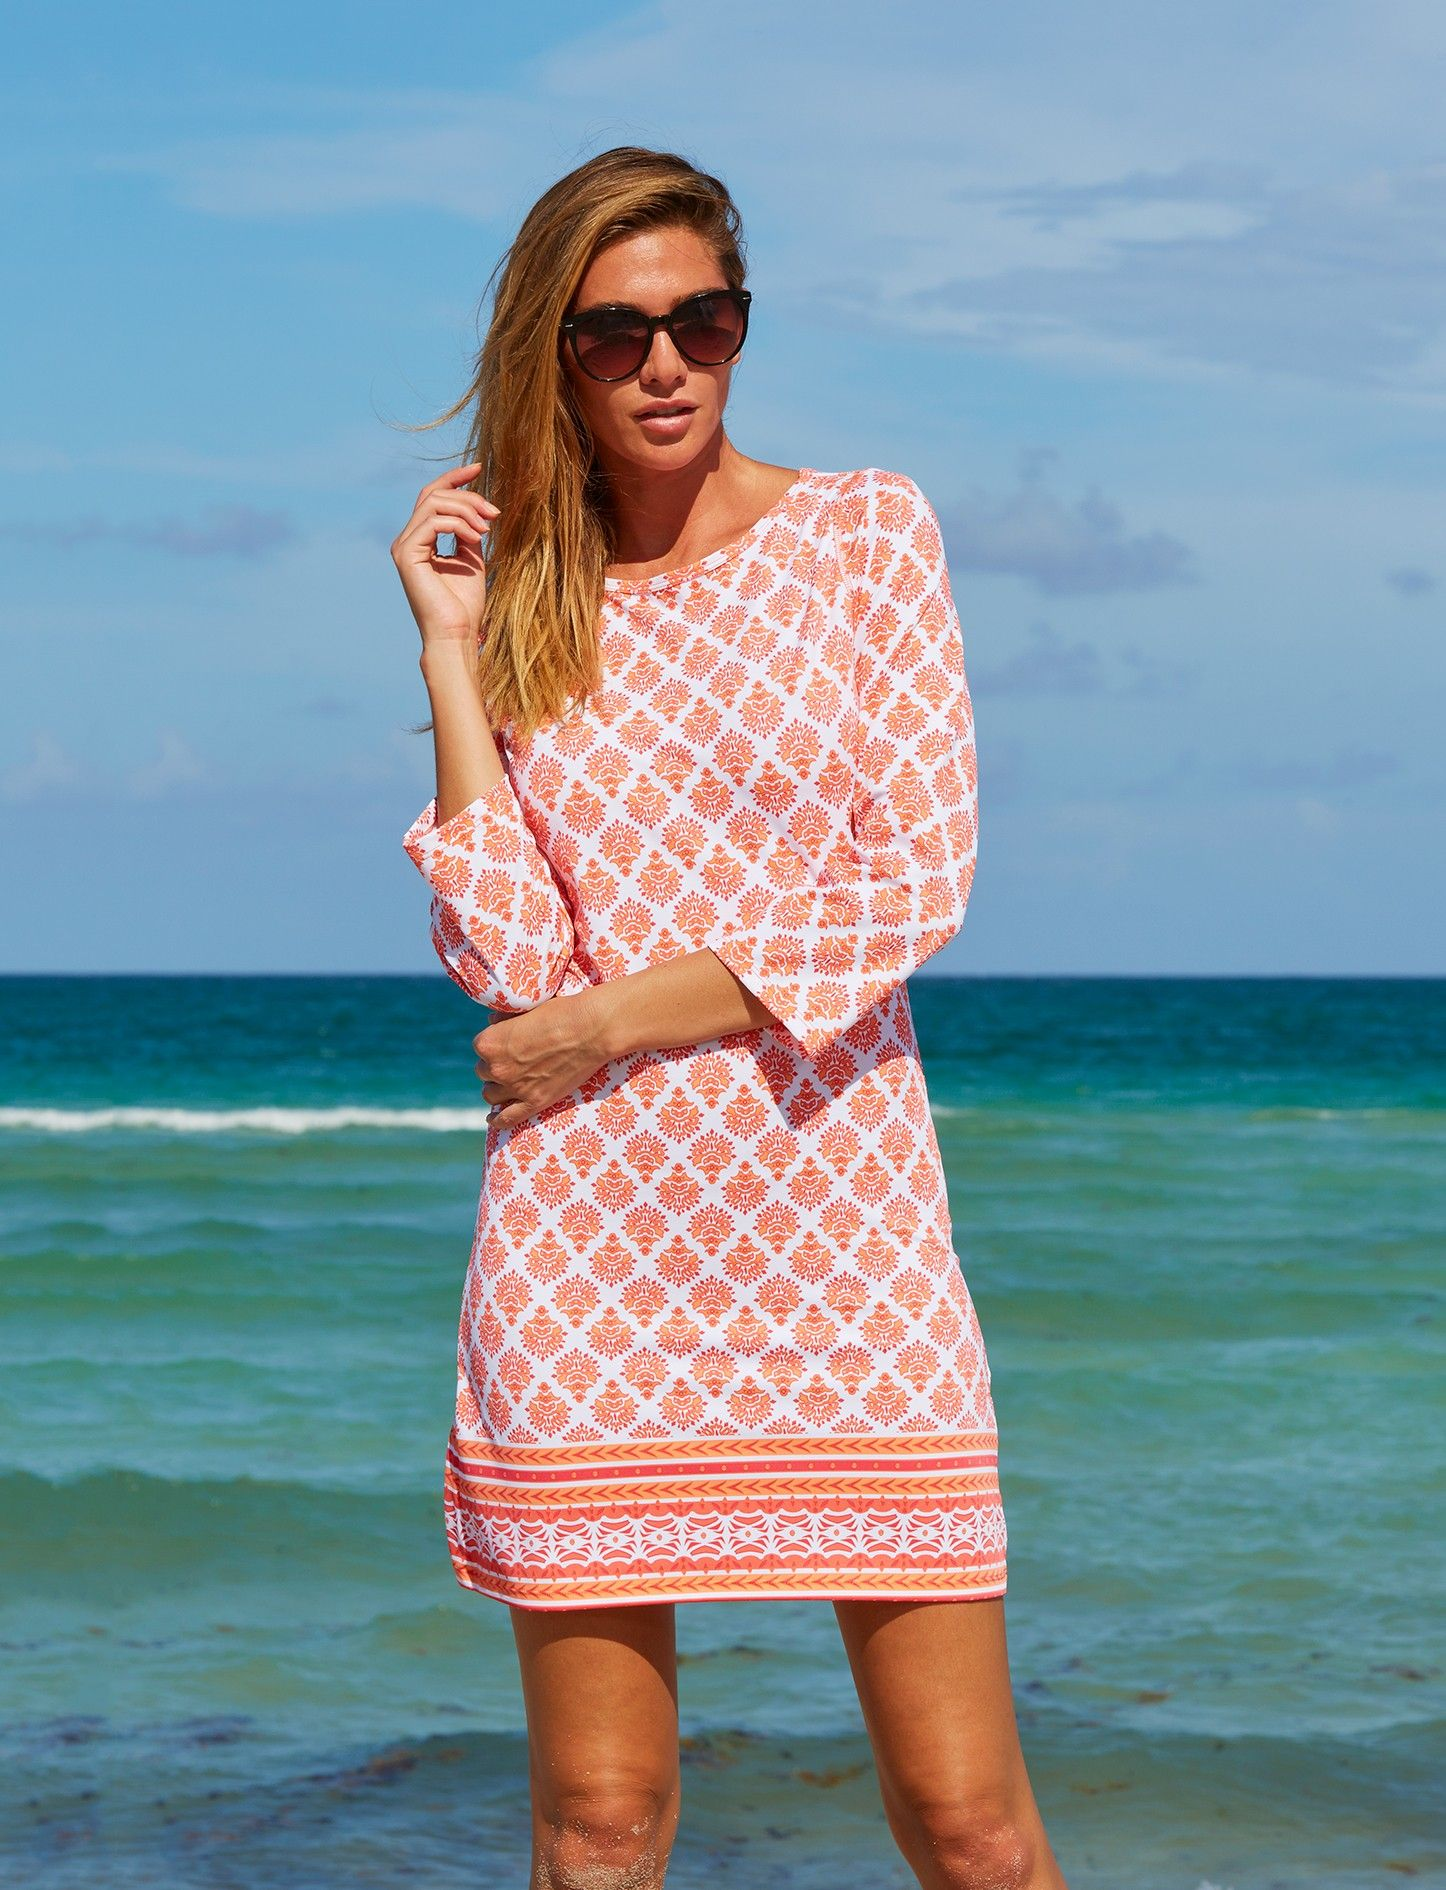 15e89be2a3 Nantucket Sound Cabana Shift Dress. Cabana Life 50+ UPF Sun Protective  Clothing.